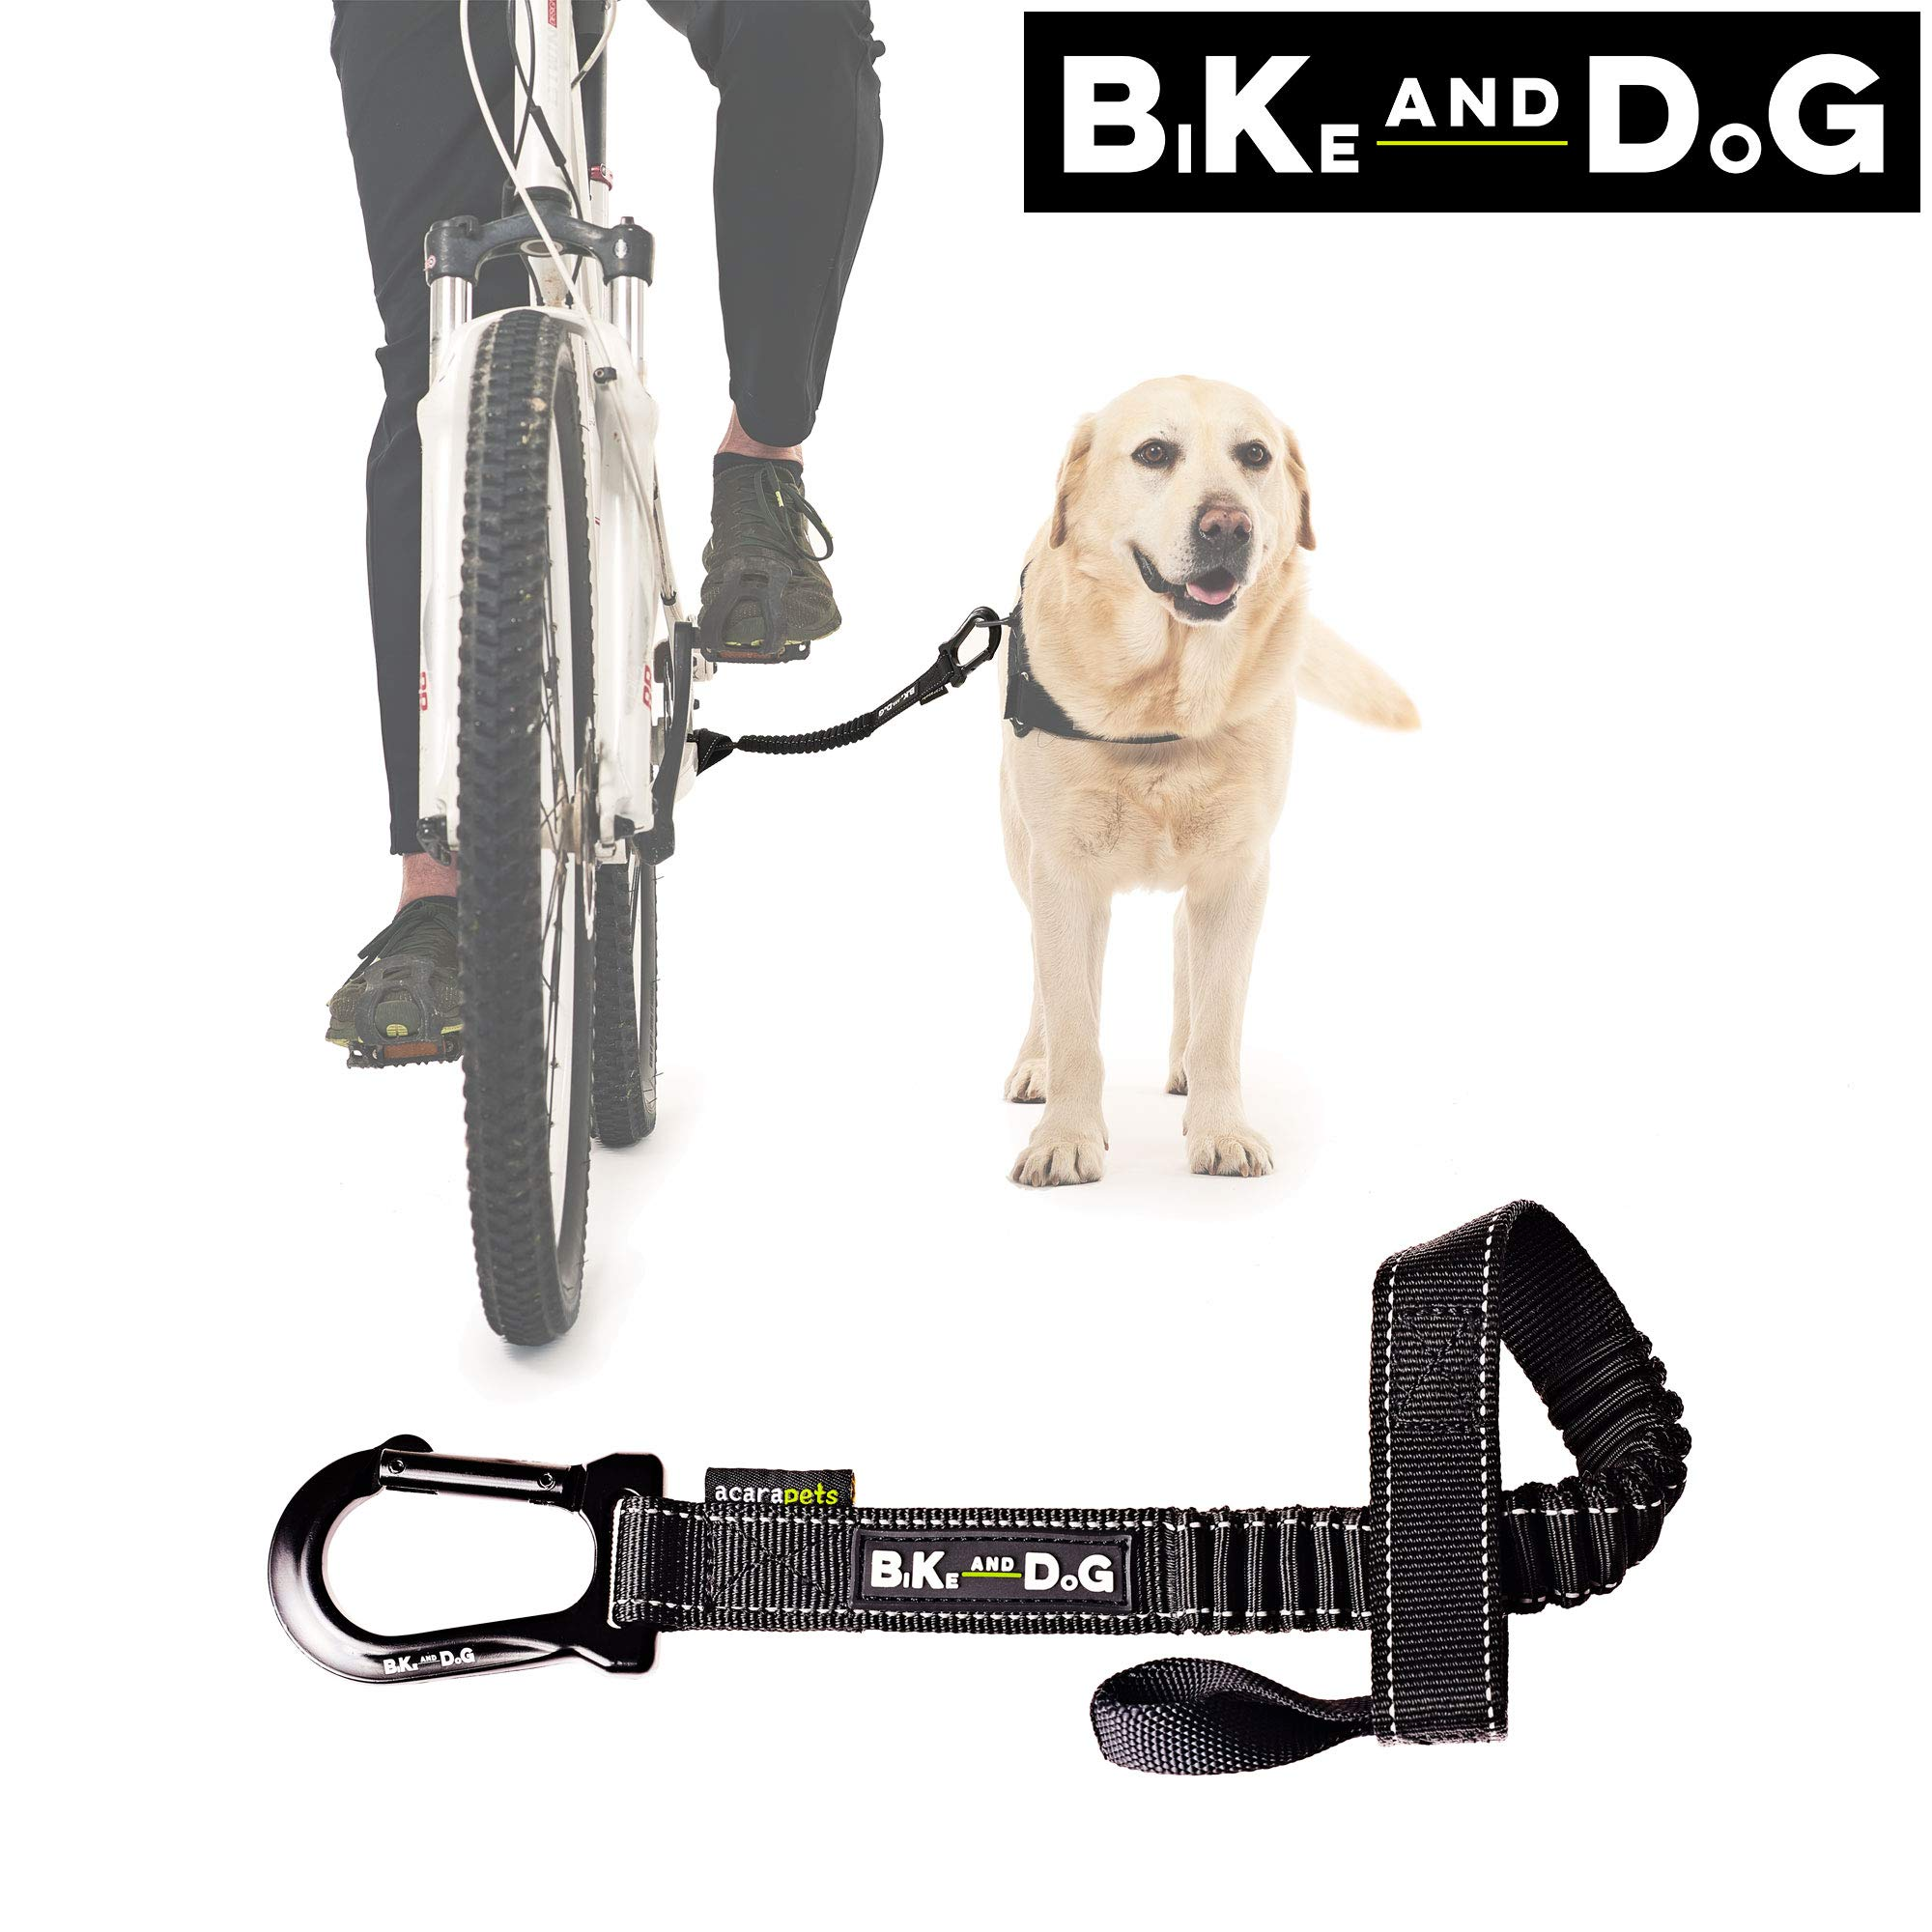 Dog Bike Leash: Designed to take one or More Dogs with a Bicycle. Patented Product.